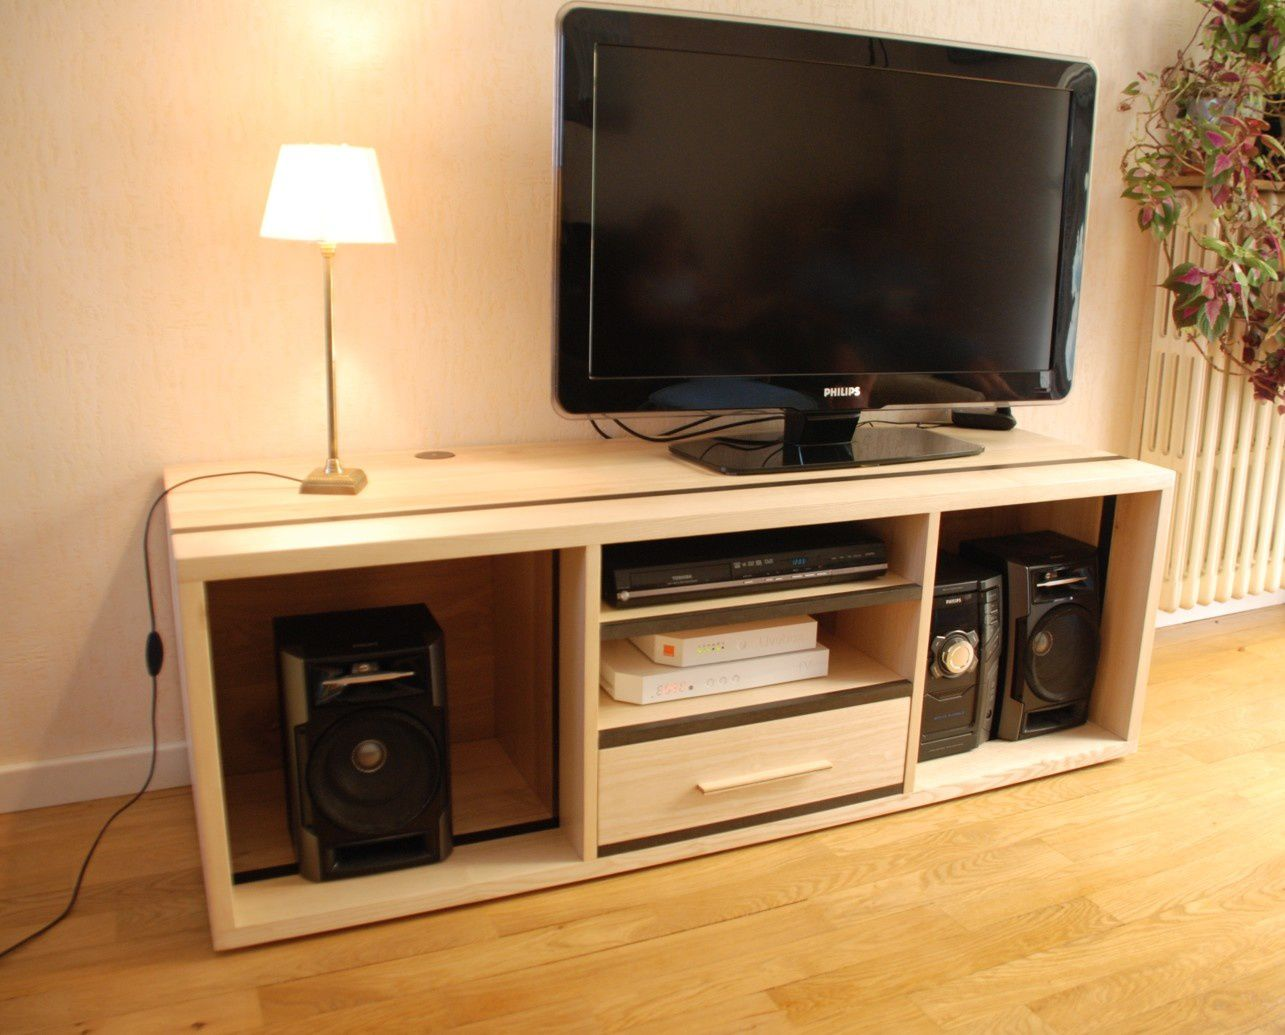 Meuble tv hifi contemporain en fr ne et valchromat gris - Meuble tv multimedia ...